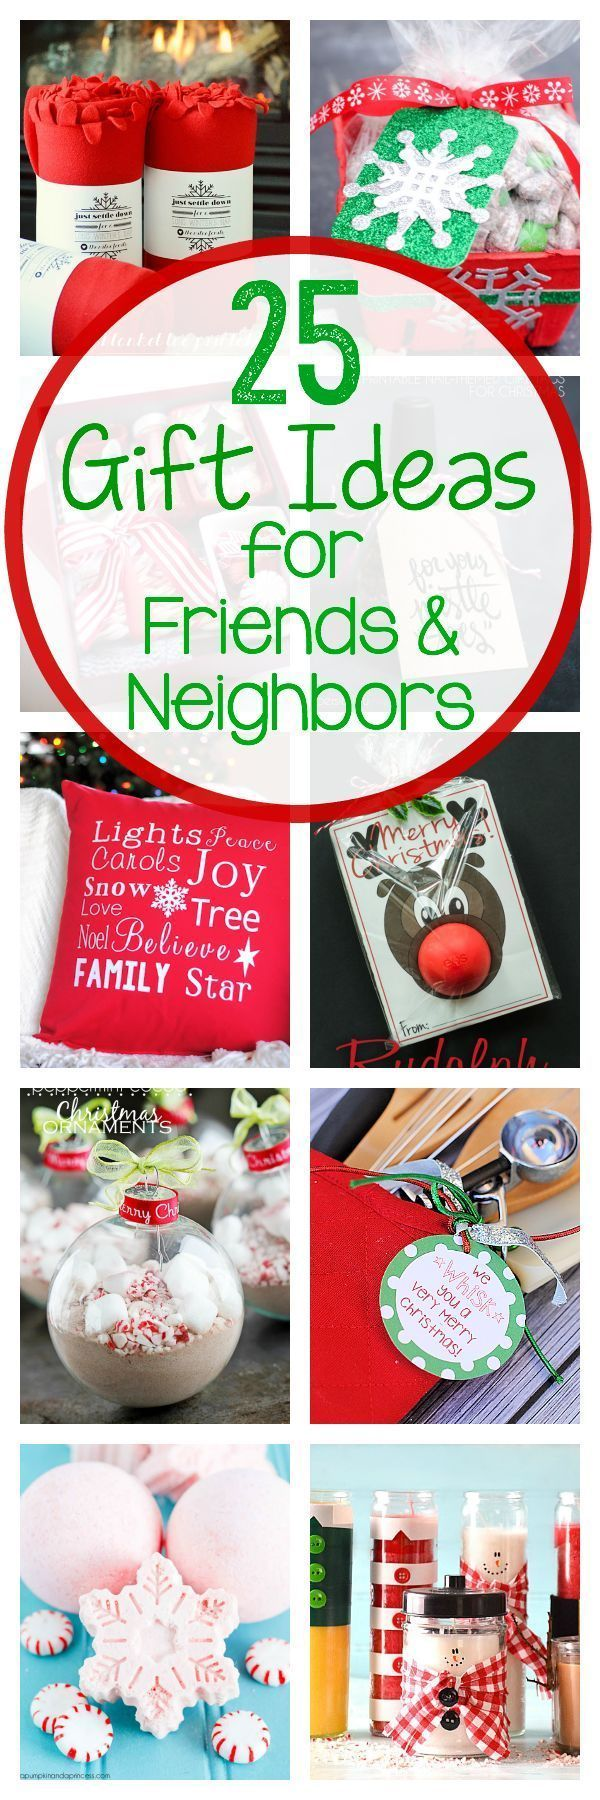 25 Gift Ideas For Friends Neighbors Gifts For Friends